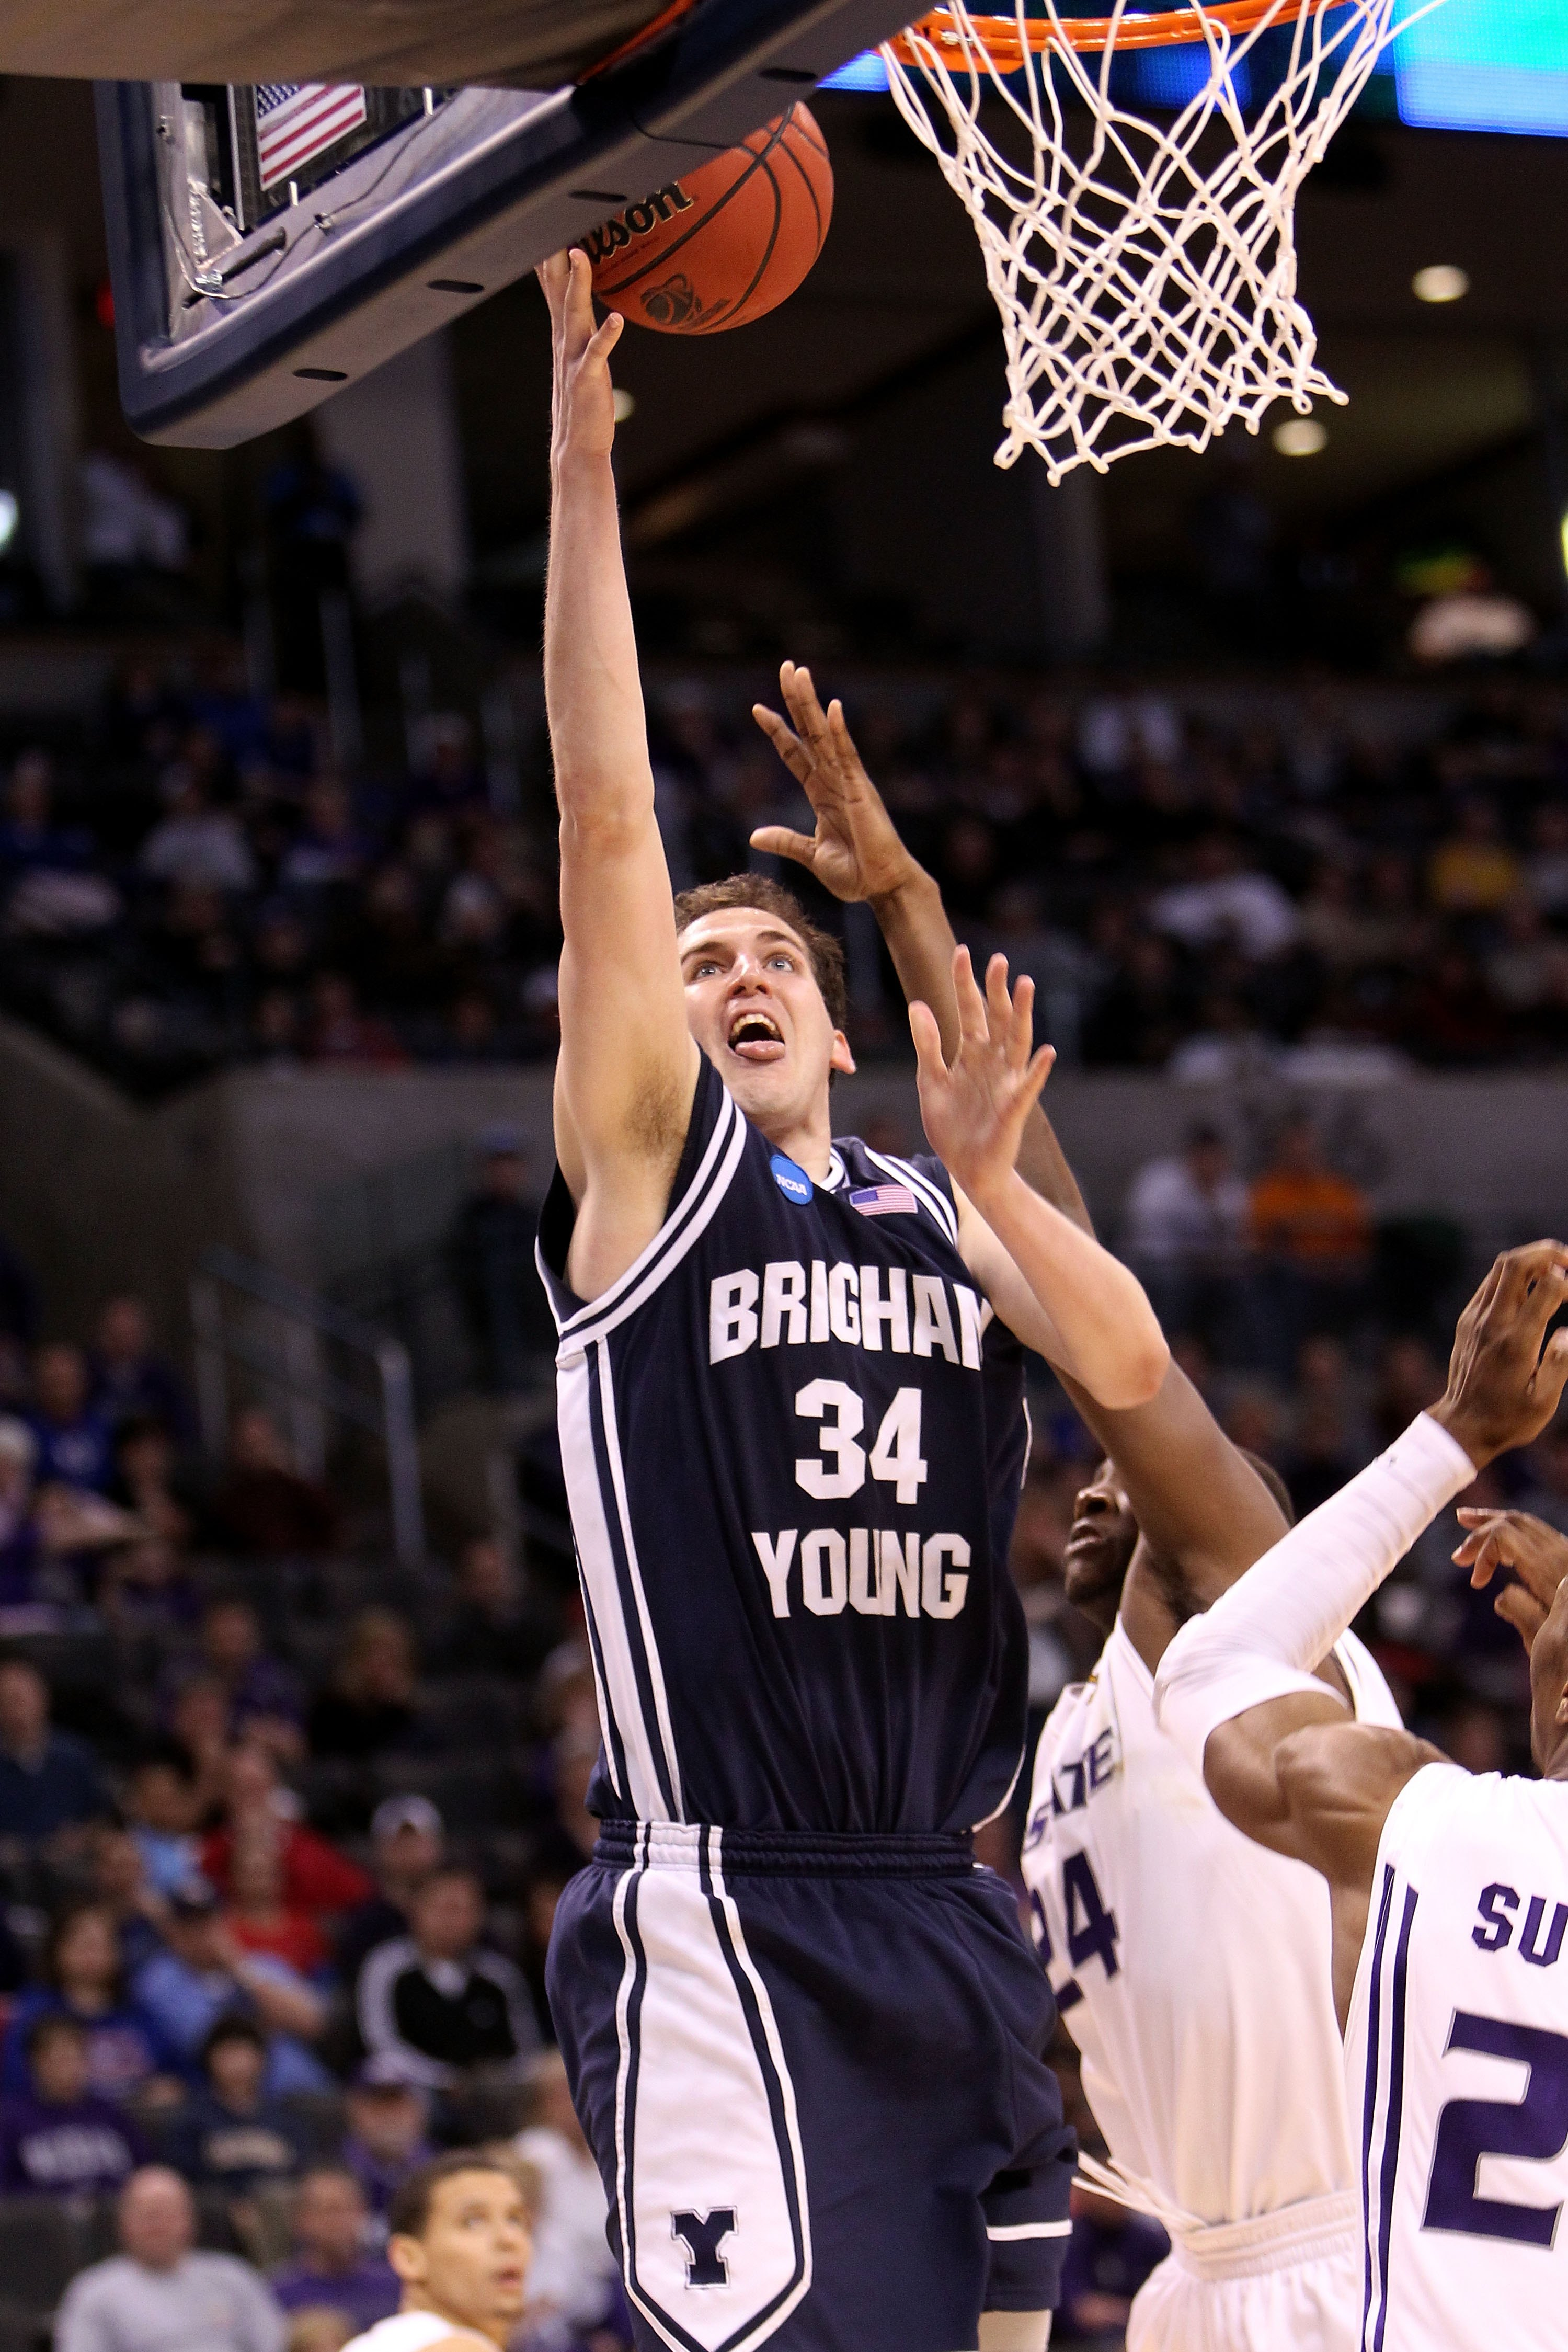 OKLAHOMA CITY - MARCH 20:  Noah Hartsock #34 of the Brigham Young Cougars attempts a shot against the Kansas State Wildcats during the second round of the 2010 NCAA men's basketball tournament at Ford Center on March 20, 2010 in Oklahoma City, Oklahoma.